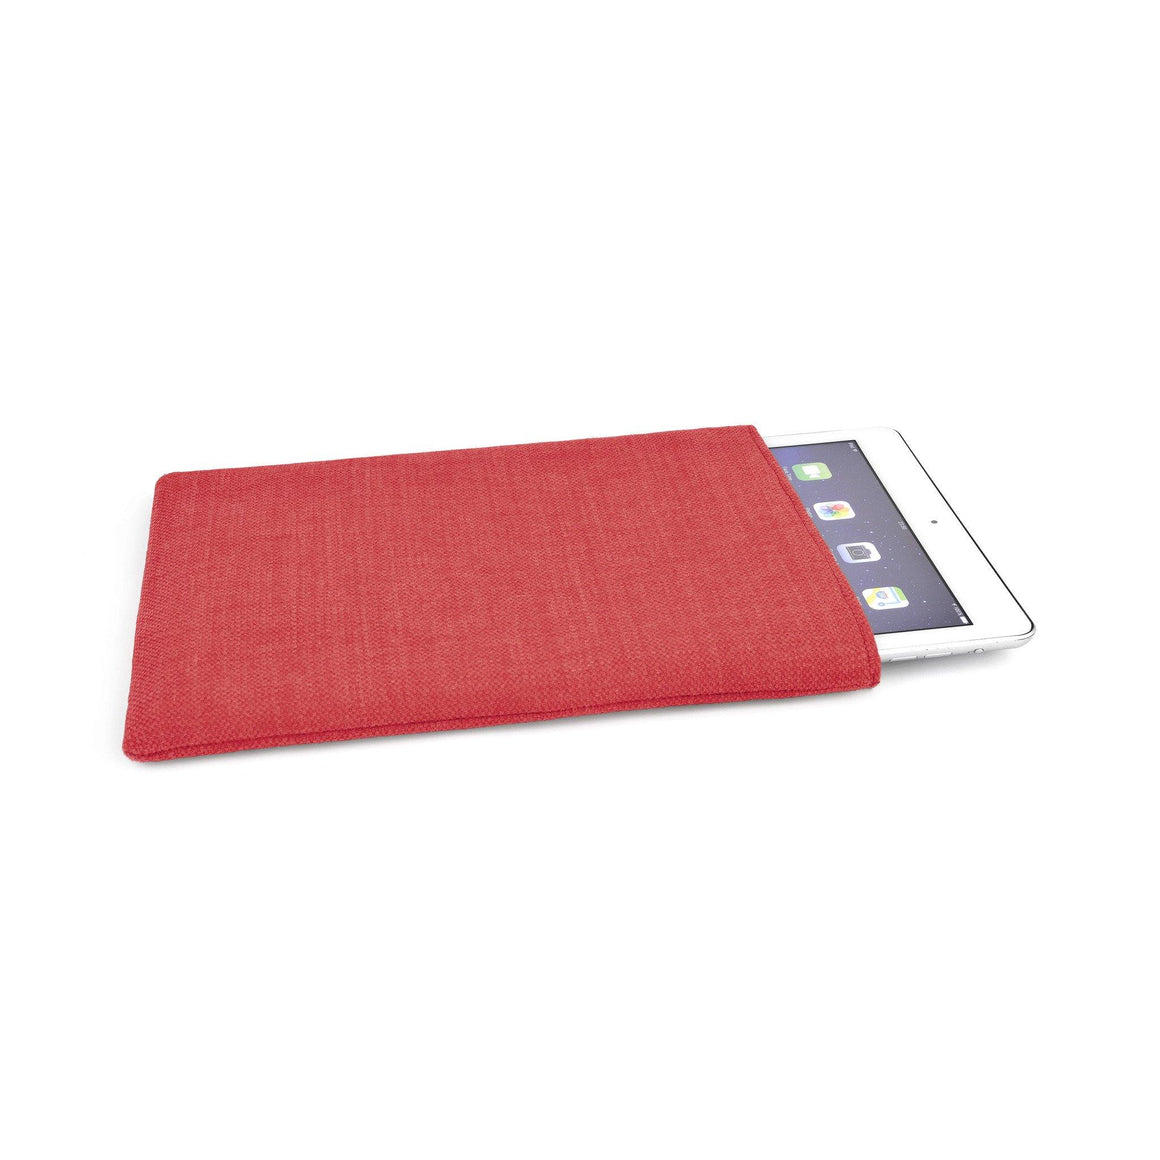 iPad Pro Linen Red 10.5 - Wrappers UK